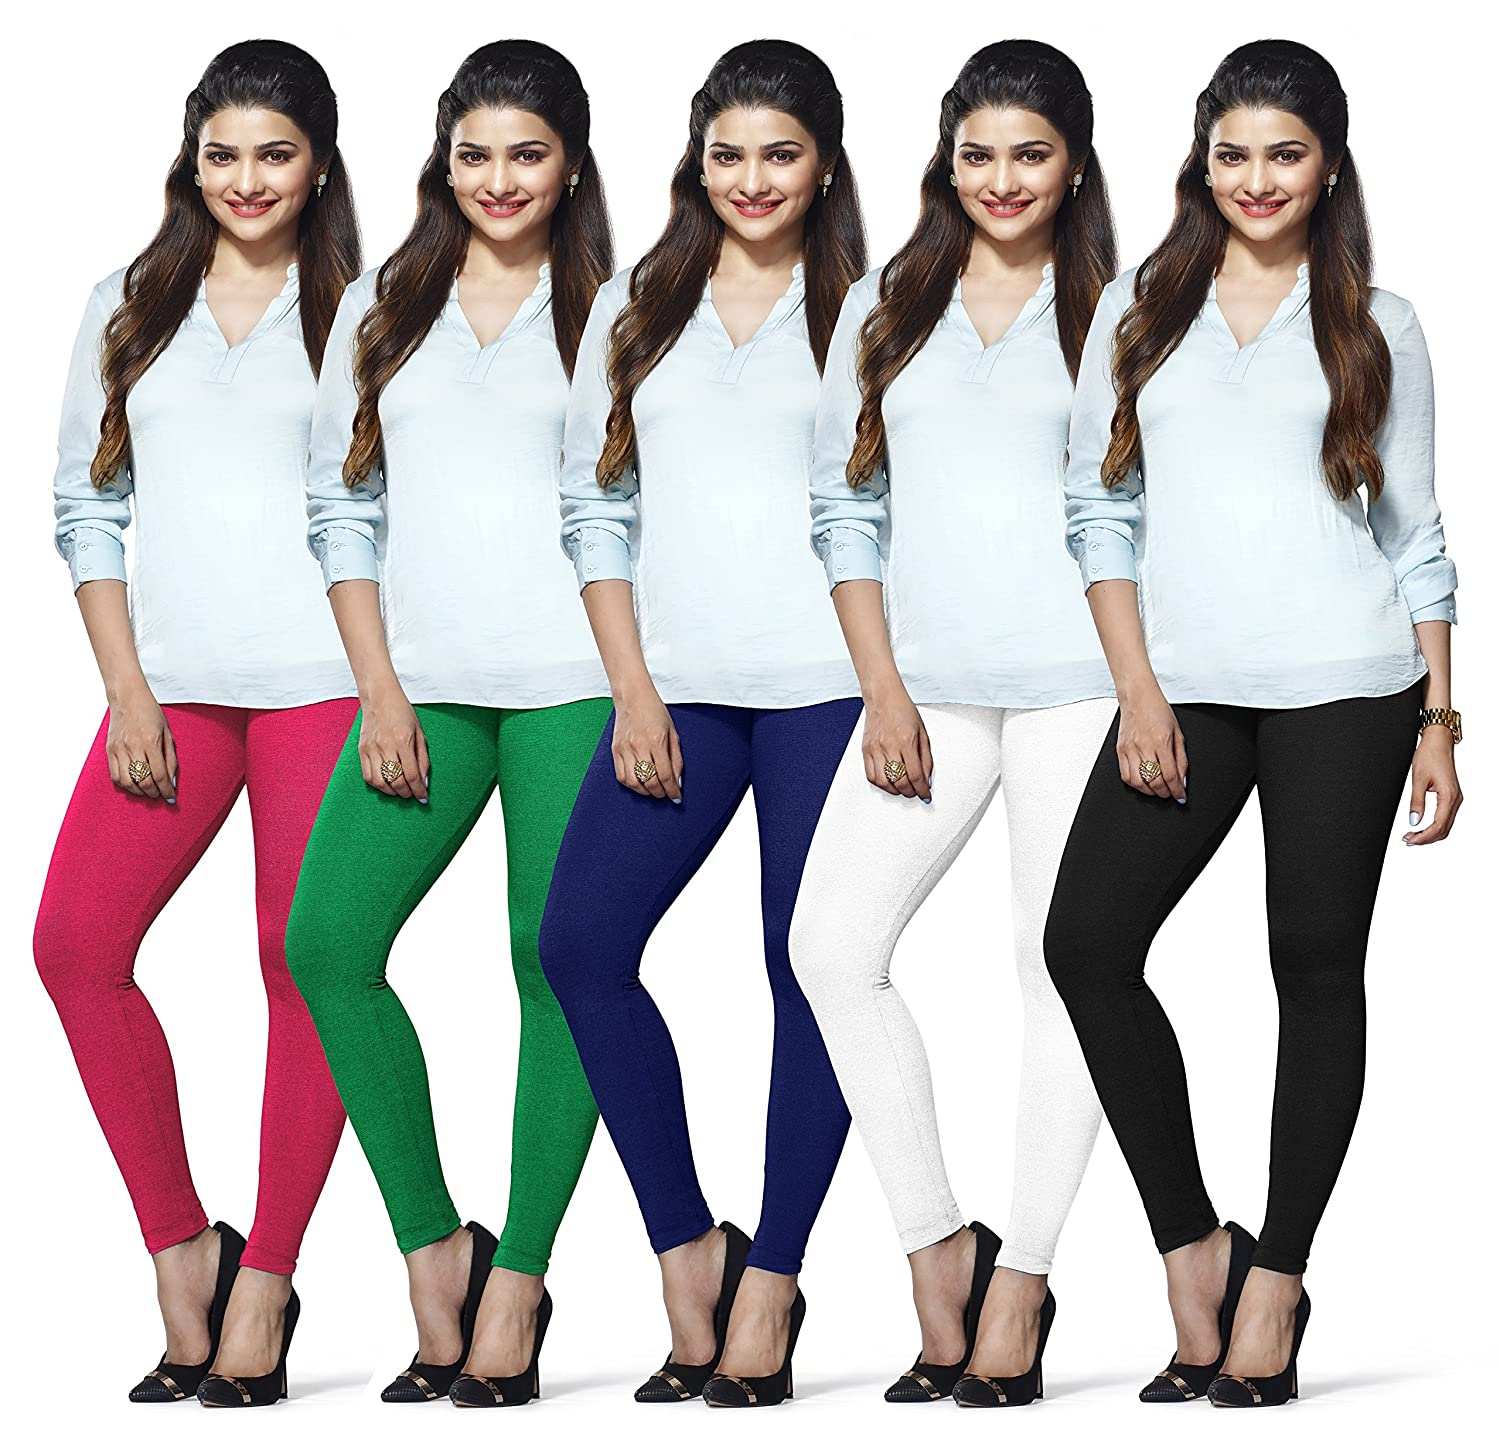 Lux Lyra Ankle Length Leggings, Pack of 5